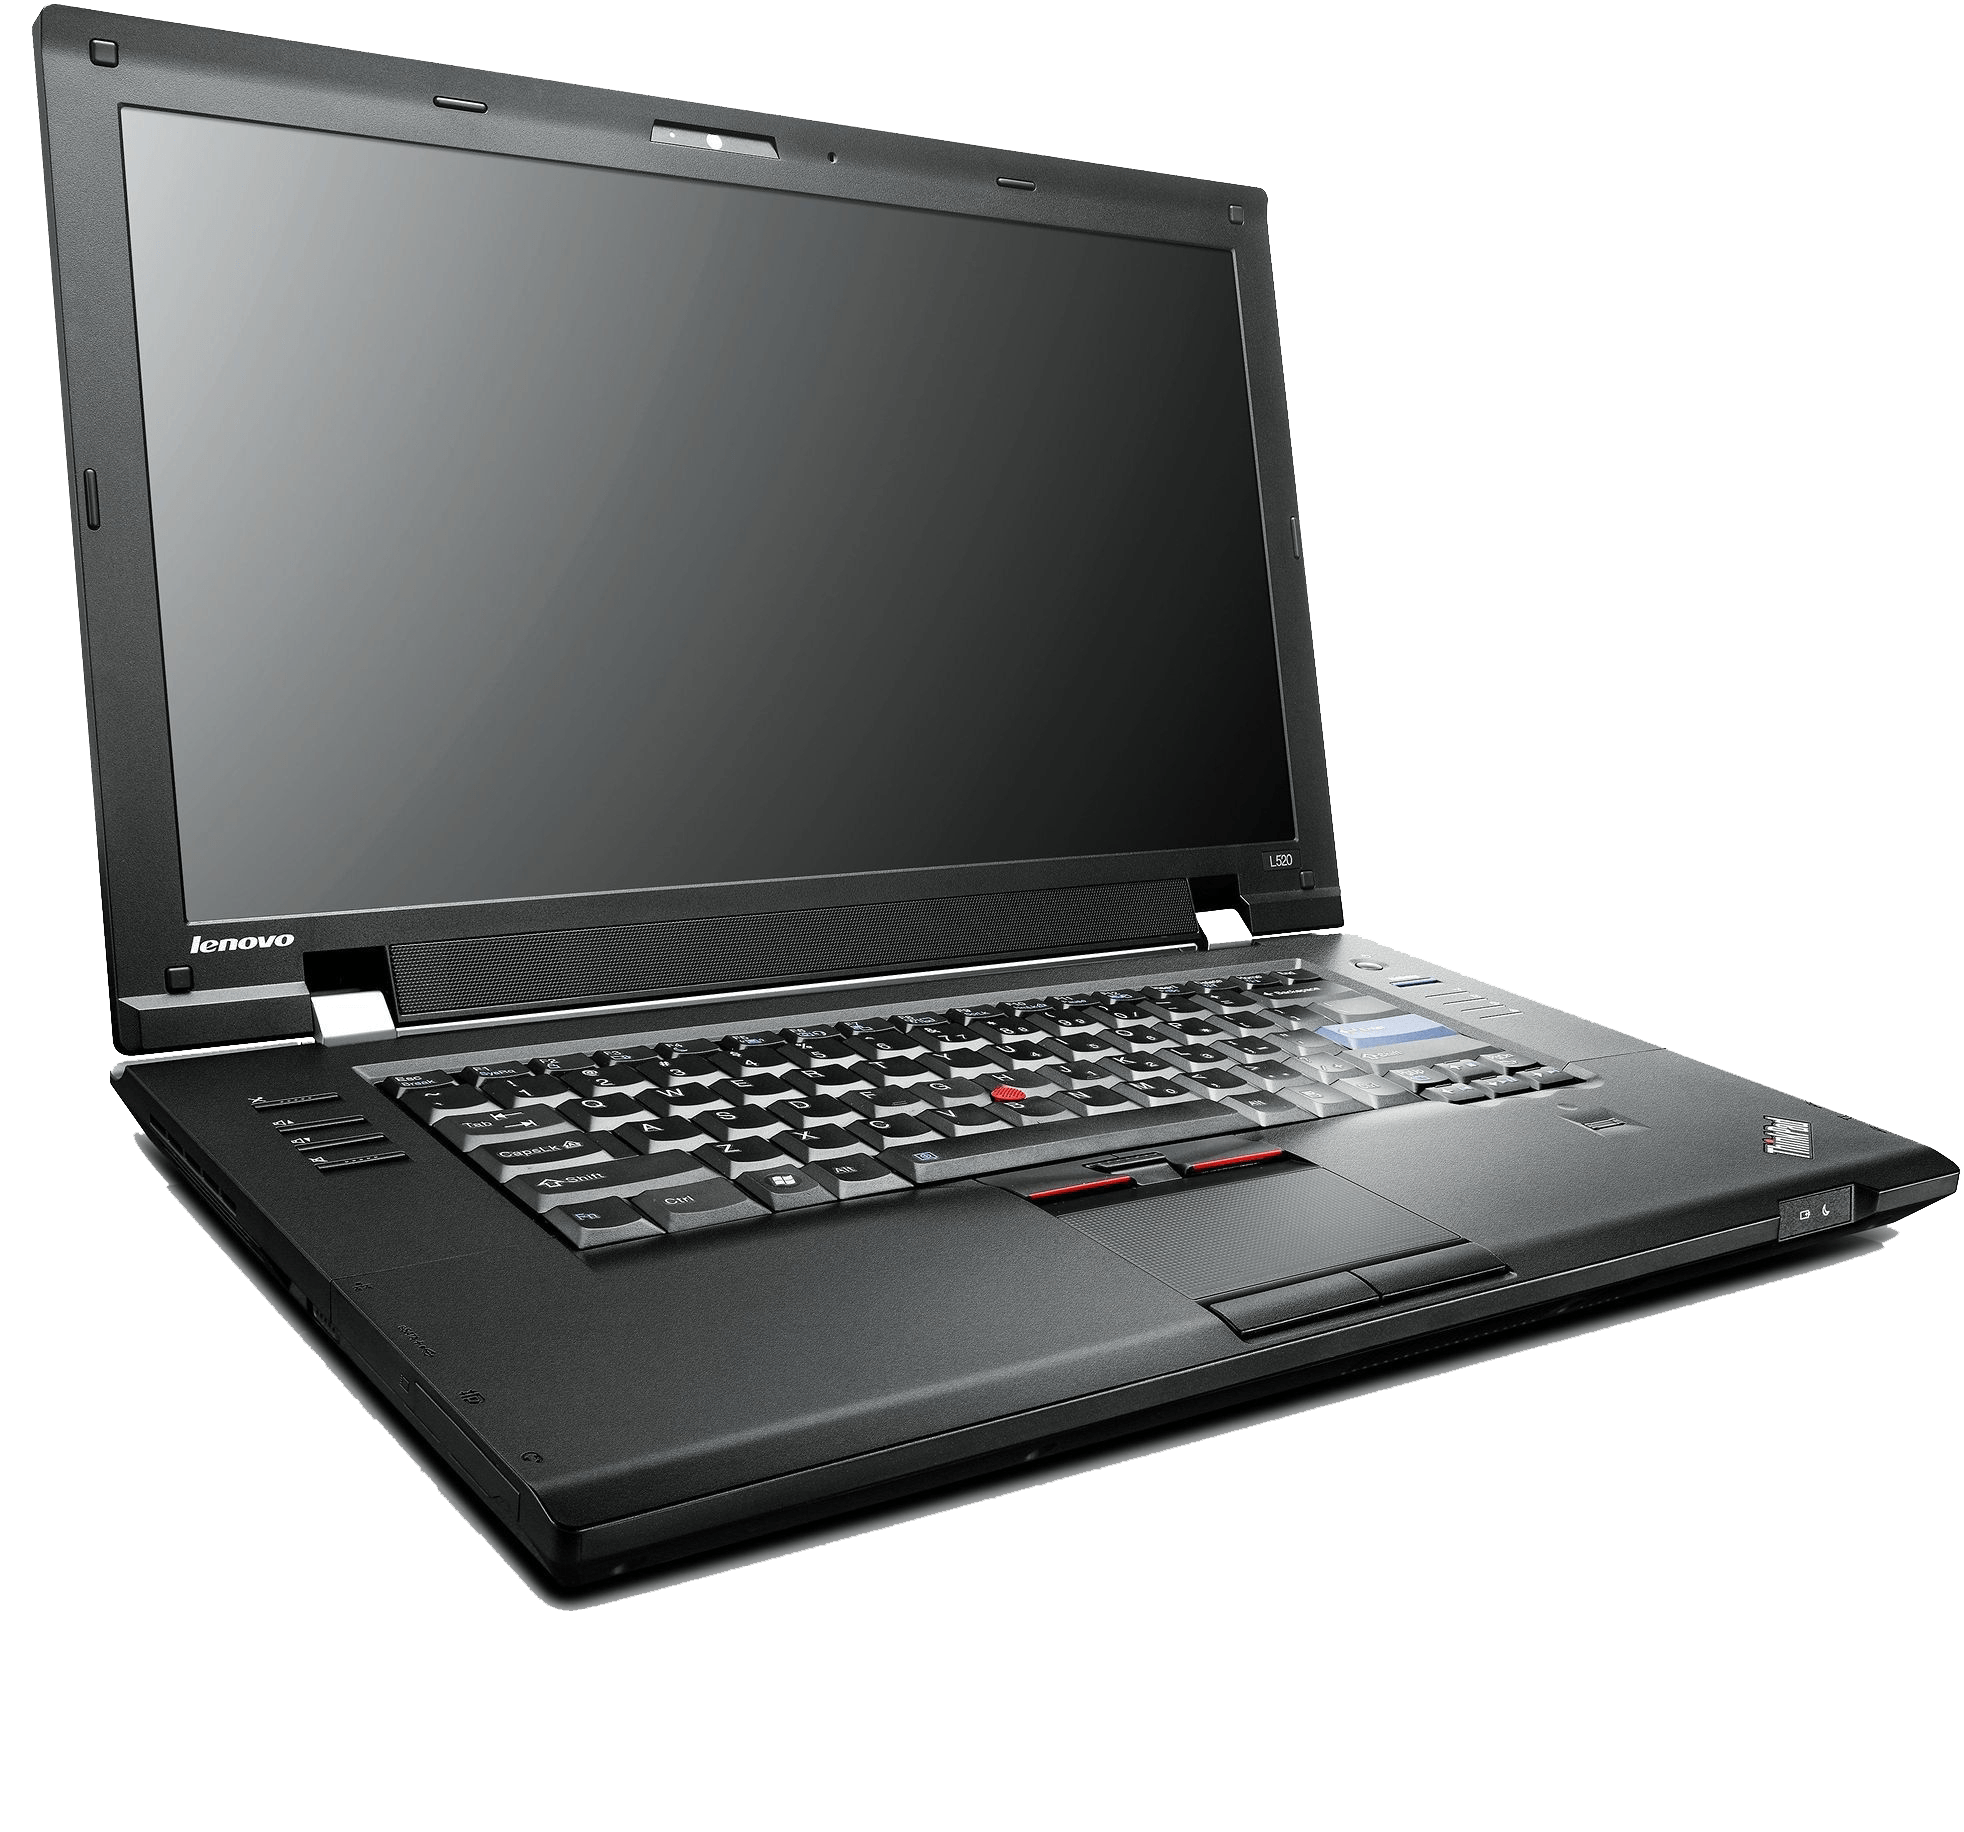 Laptop Notebook Png Image PNG